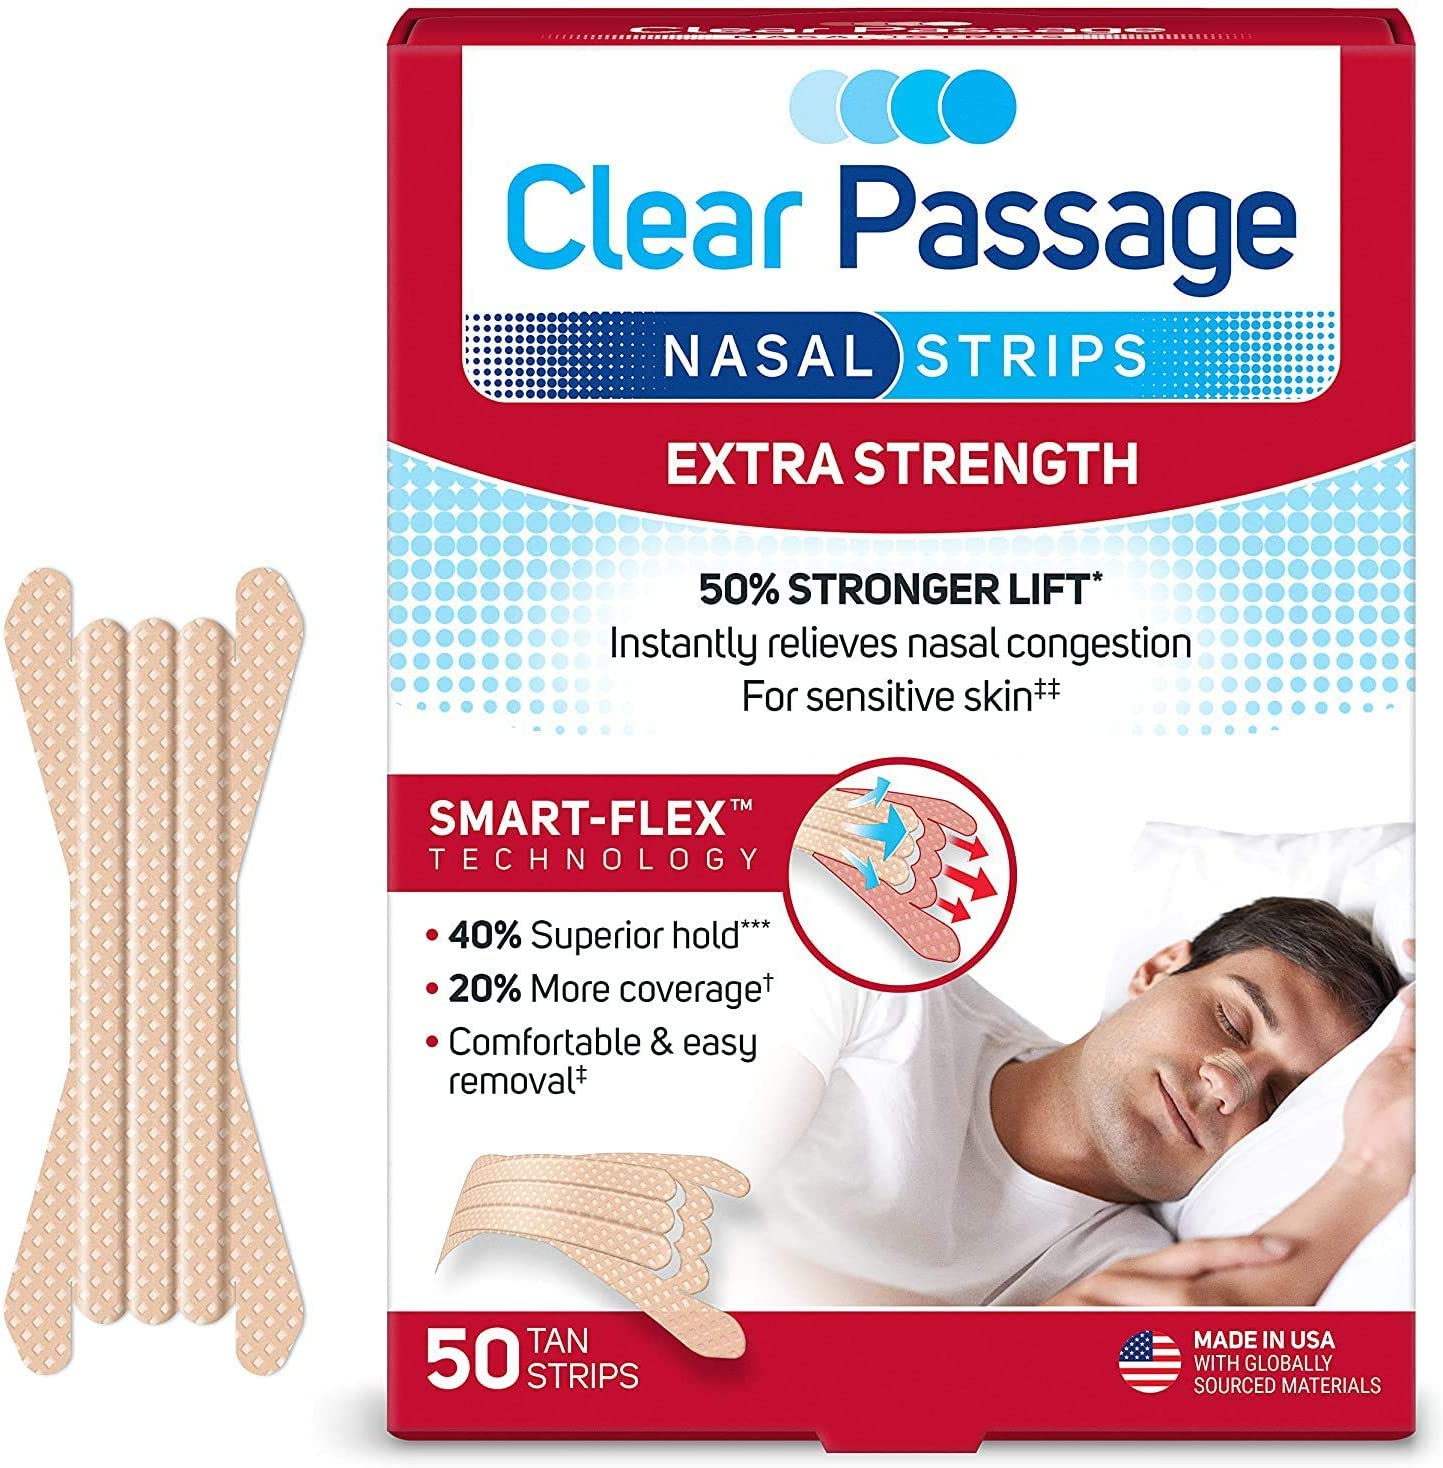 Clear Passage Nasal Strips Extra Strength, Tan, 50 Count | Works Instantly to Improve Sleep, Reduce Snoring, Relieve Nasal Congestion Due to Colds & Allergies